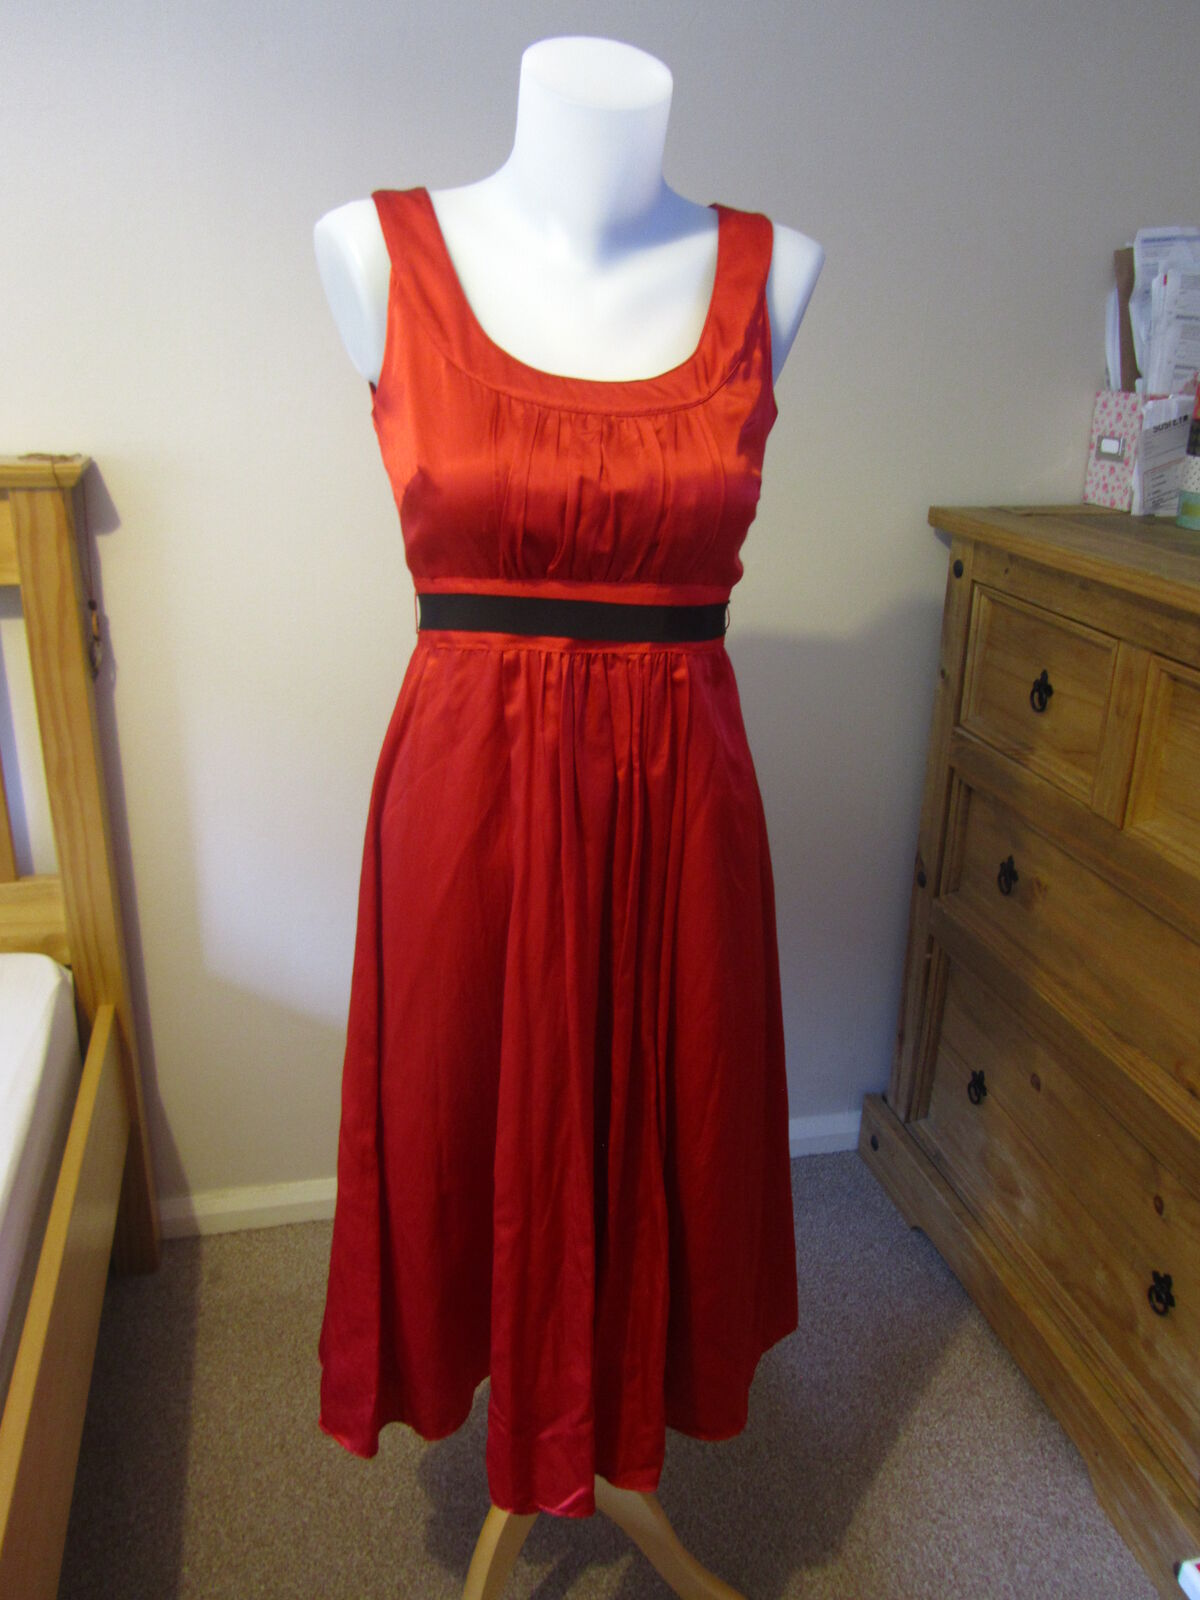 Monsoon silk style red dress - size 10 - party wedding retro 50's style